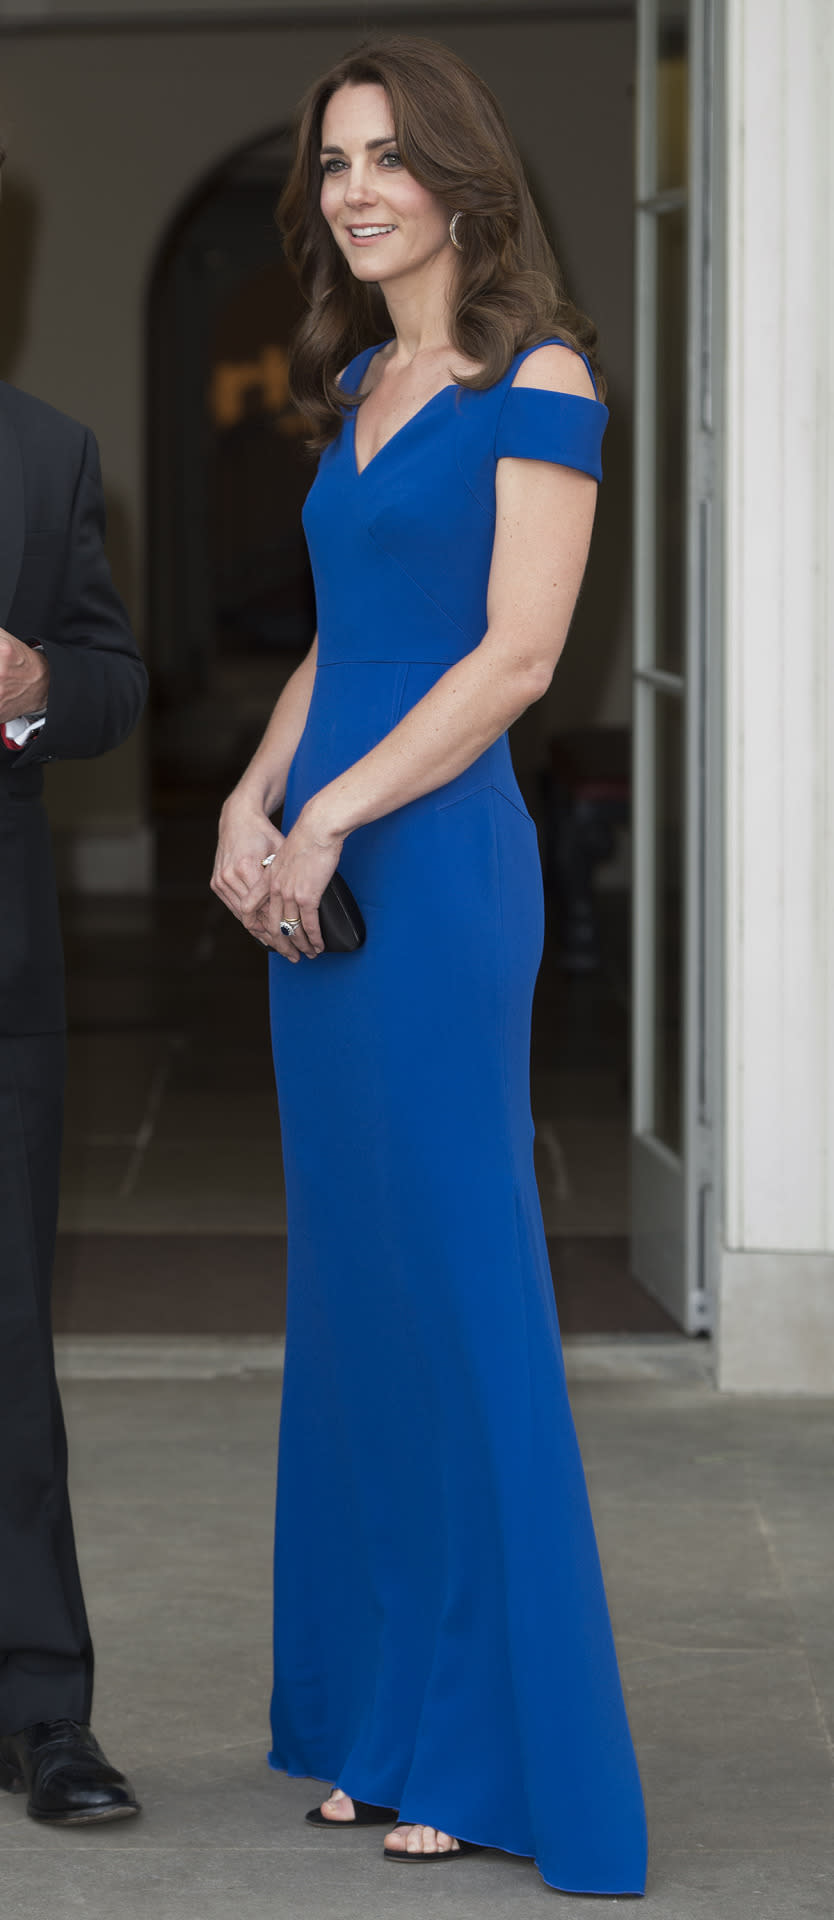 <p>For a Sports Aid gala at Kensington Palace, Kate wore a gorgeous royal blue Roland Mouret gown. Cartier hoop earrings, a black satin Prada clutch and Gianvito Rossi sandals topped off her stunning look.</p><p><i>[Photo: Getty]</i></p>